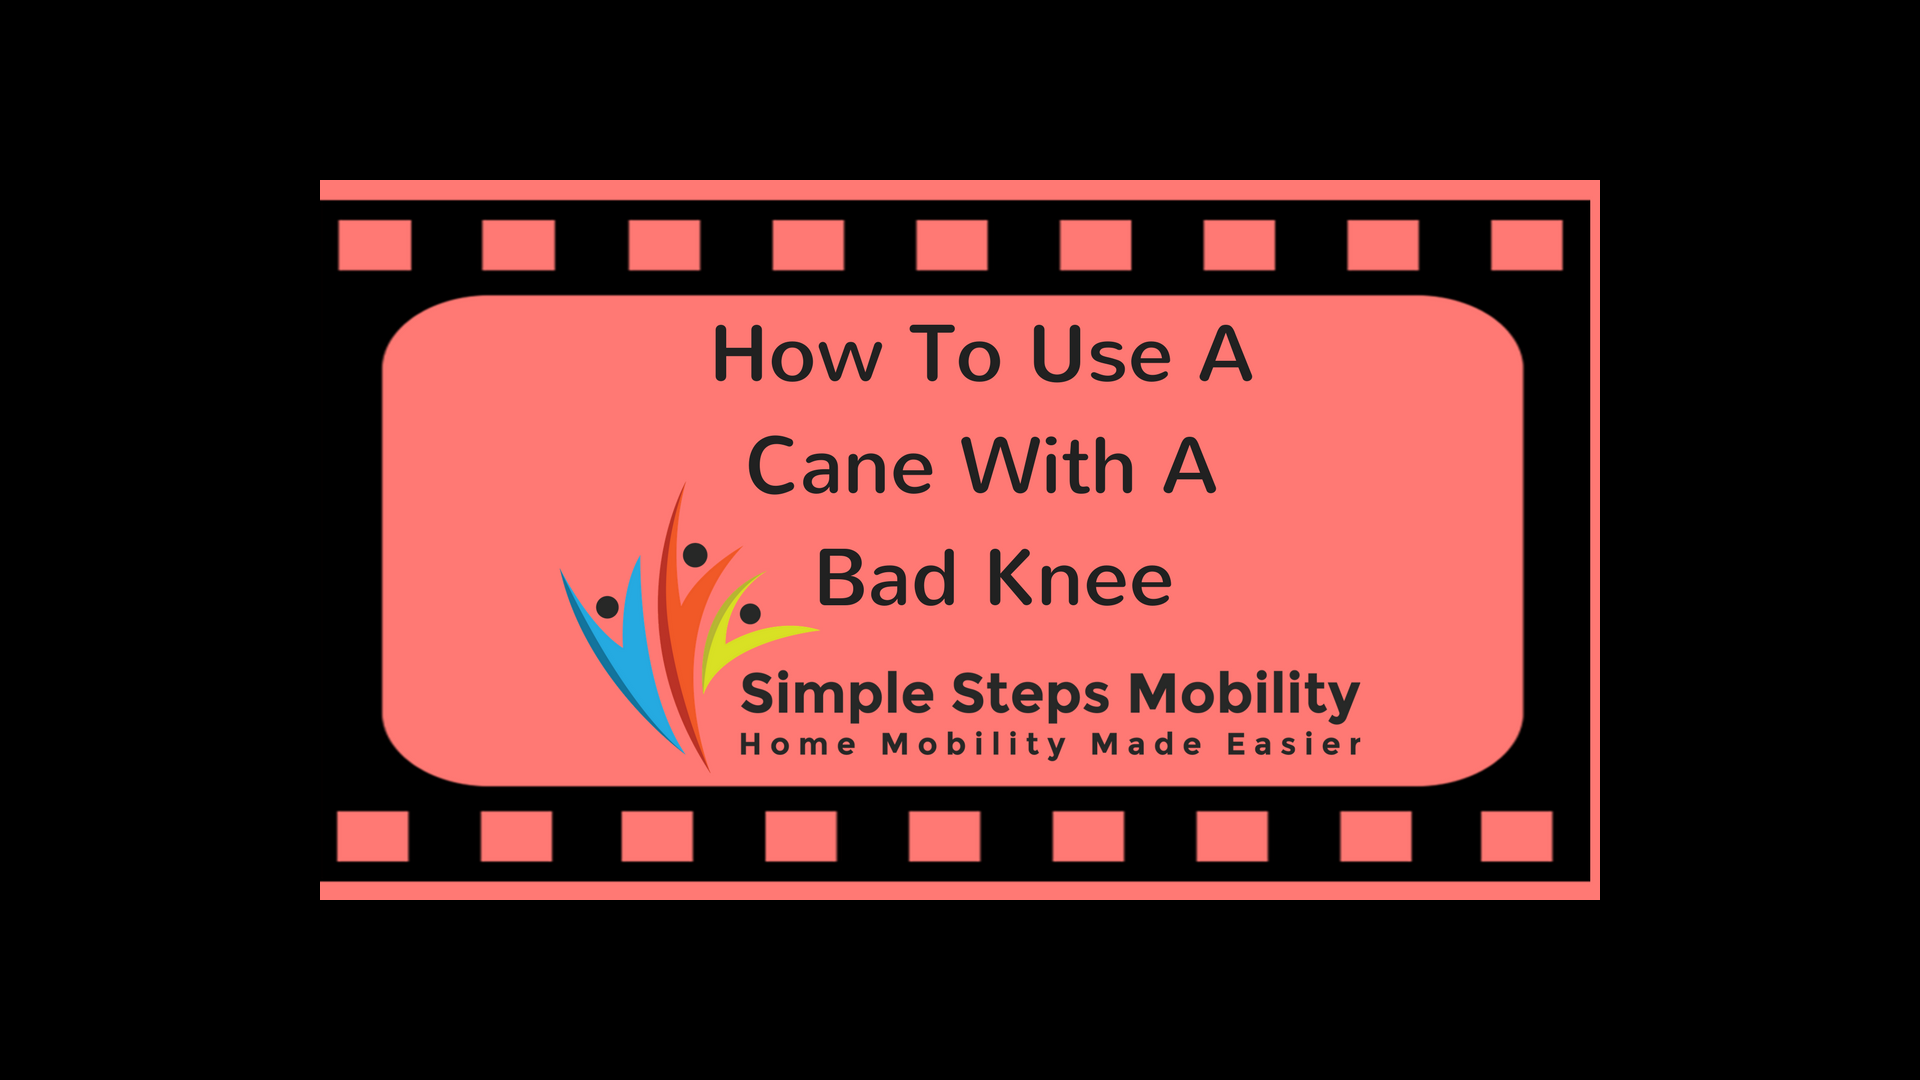 How To Use A Cane With A Bad Knee